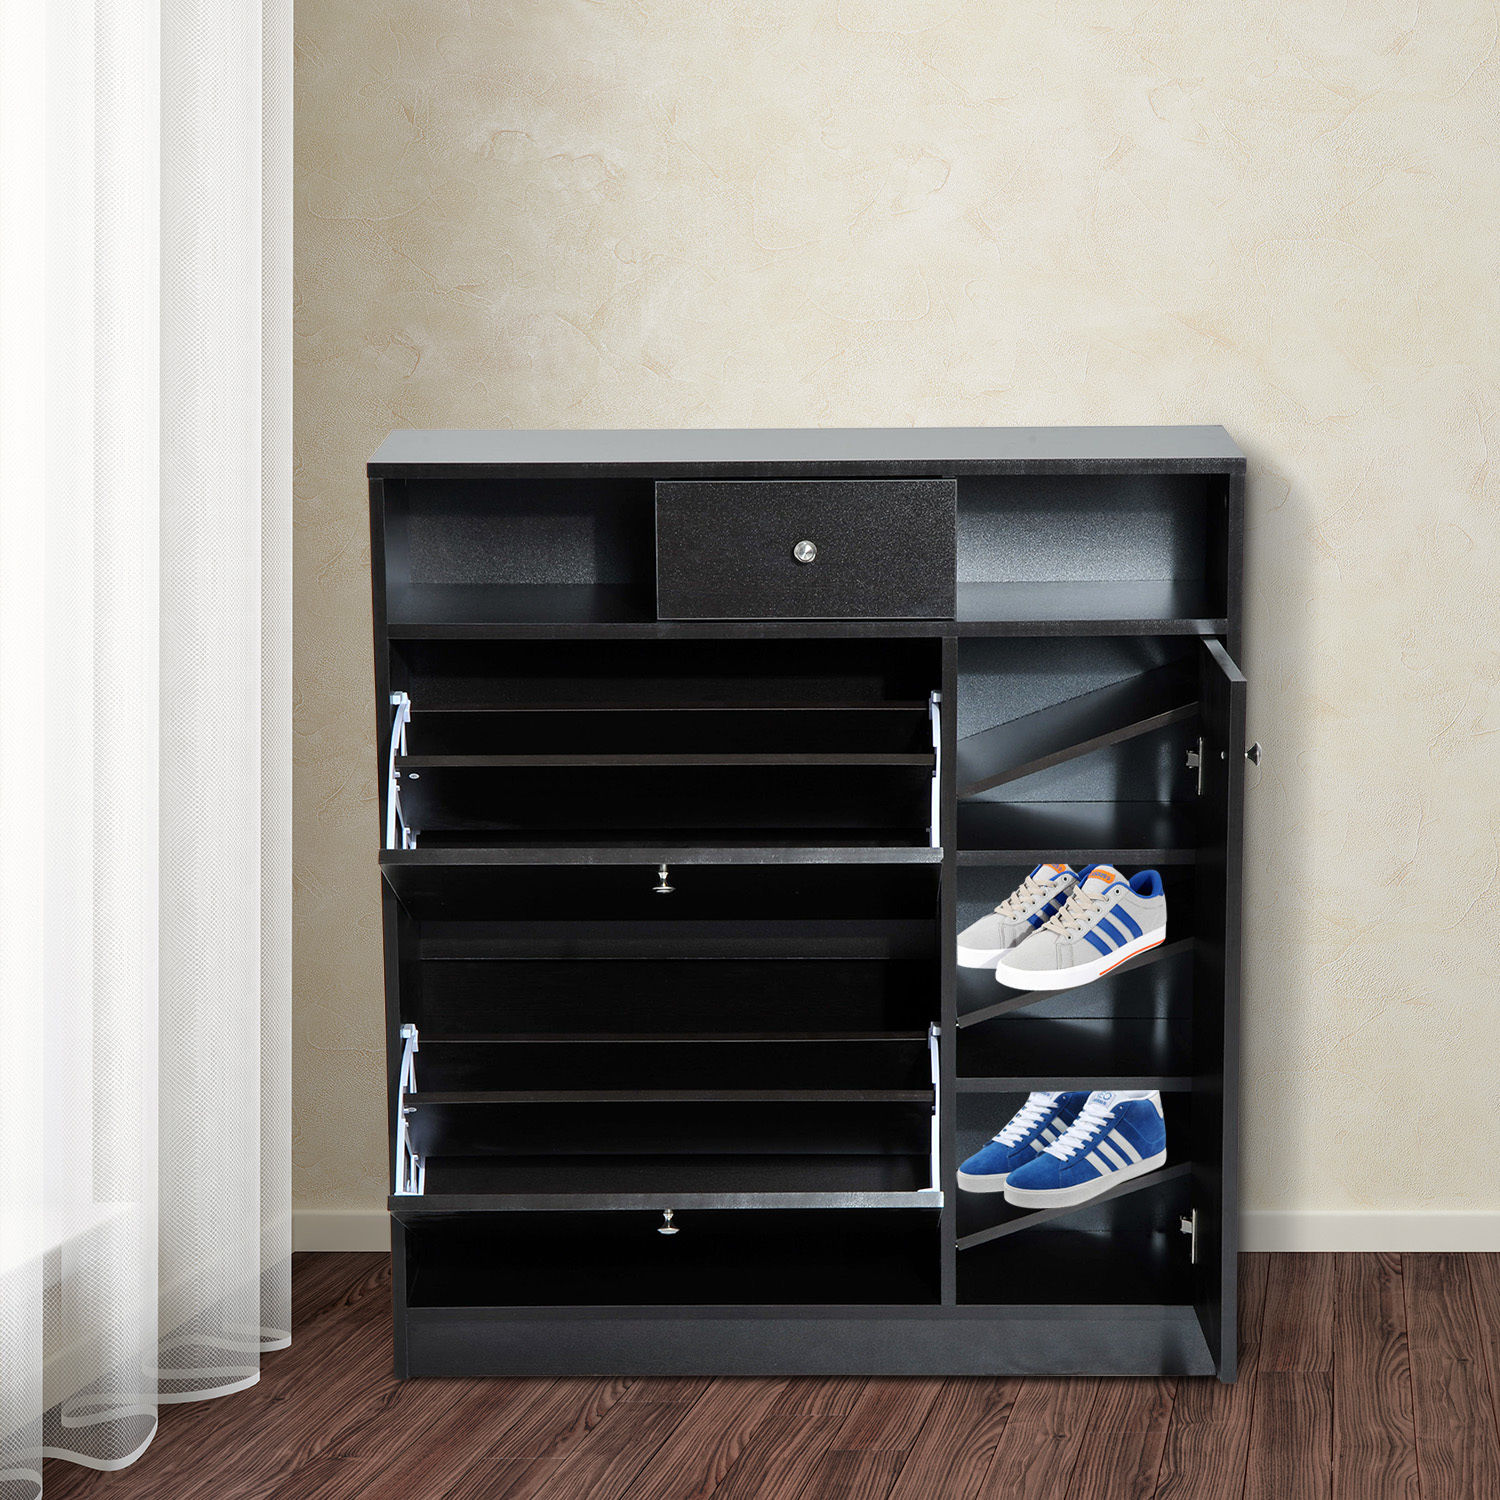 closet organizers distinguished size along built custom for organi large with encouraging adorable in units together organizerswalk drawer unitscloset zq drawers walk full ins then organizer home